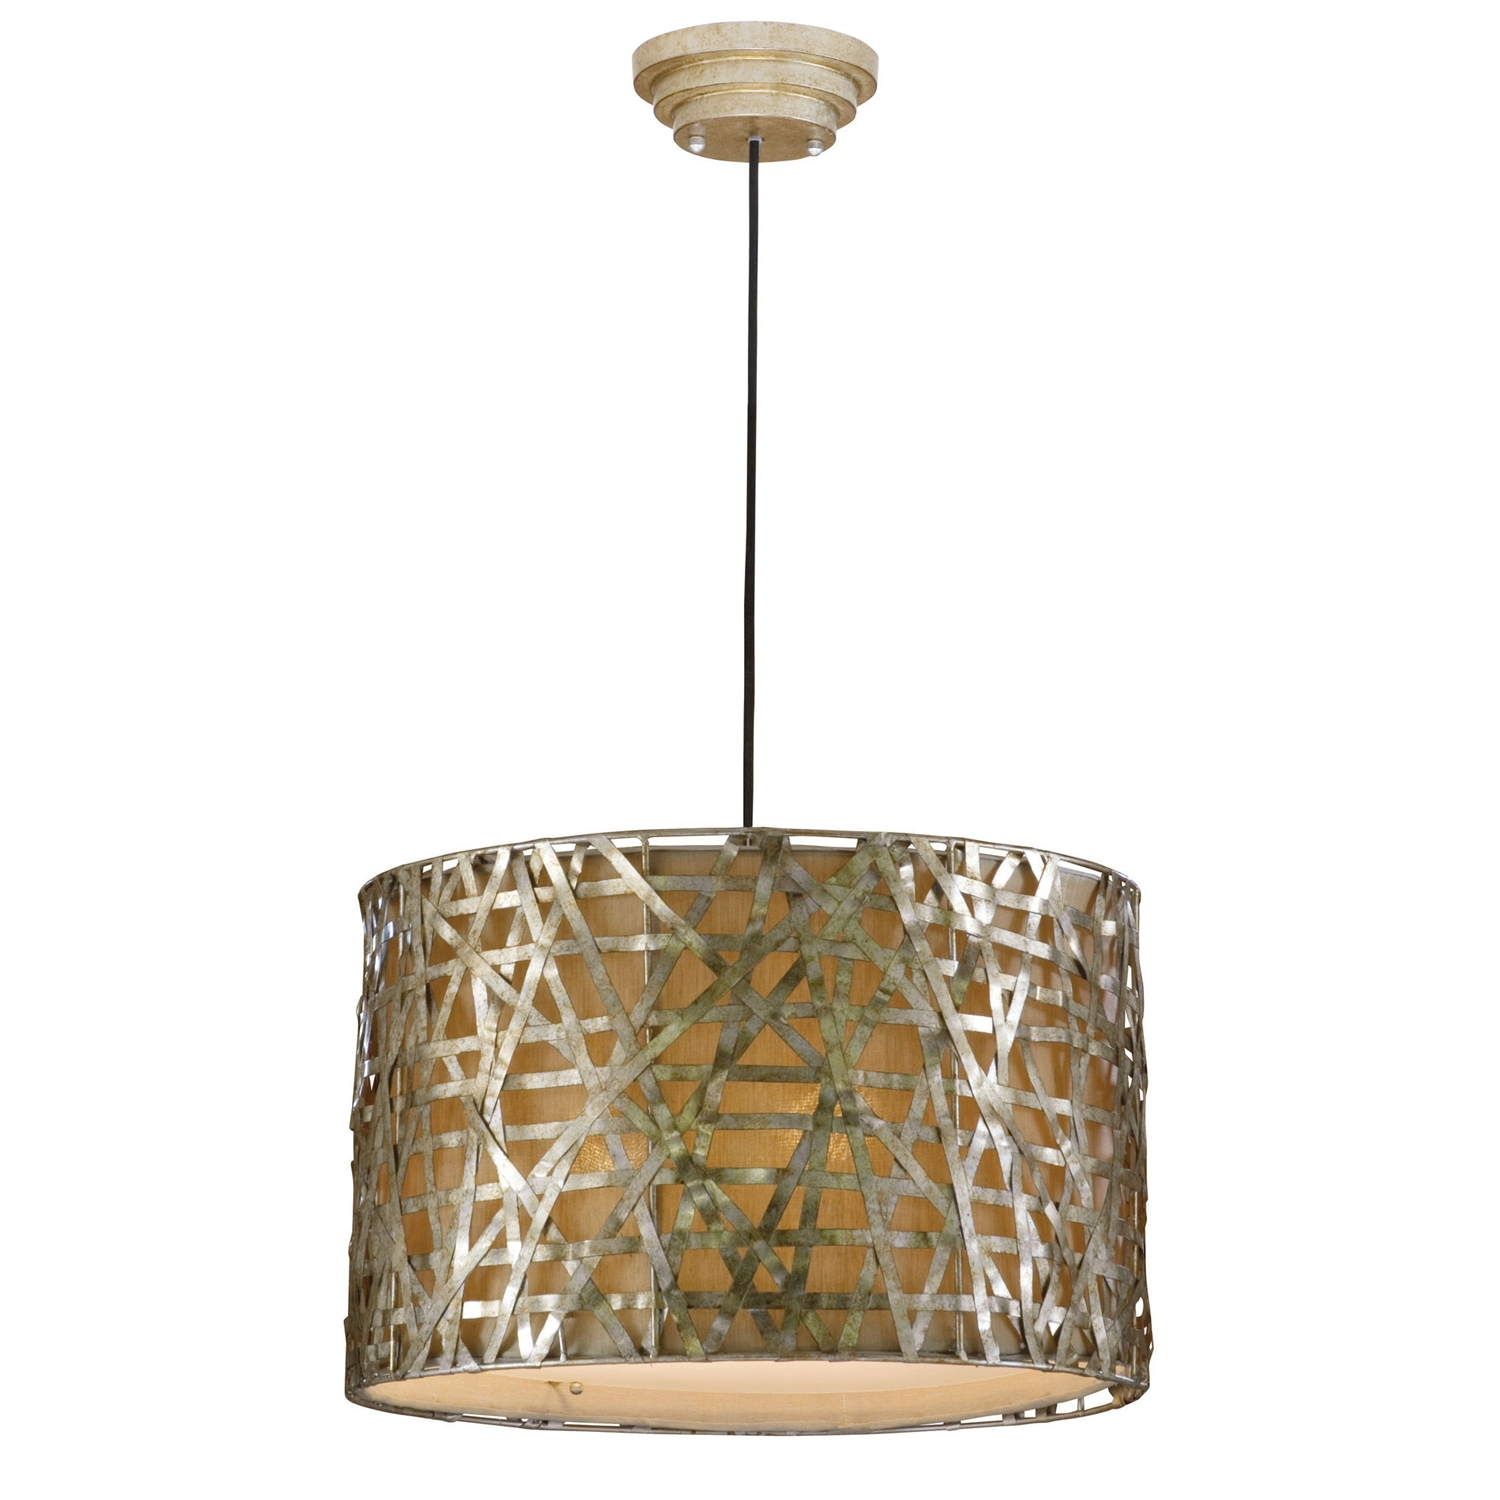 Relaxed and light, this Modern 3-Light Drum Ceiling Pendant Light in Champagne Satin Metal Finish is a smart choice for the home that is about comfort and quiet style. The fixture will provide your home with light fixtures that are made from unique materials. Material: Metal; Swarovski Crystal: No; Lens Included: No; Bulb Type: Incandescent; Bulb Shape: A; Transformer Required: Yes; Number of Lights: 3 ; Connection: Junction box; Voltage: 110 Volts (V); Wattage per Bulb: 60 Watts (W); Product Care: Dust with a clean, soft, dry cloth. Do not use abrasives. Country of Manufacture: China; Assembly Required: Yes. Energy Star Compliant: No; Damp, Dry or Wet Location Listed: Dry;  UL Listed: Yes; cUL Listed: Yes.